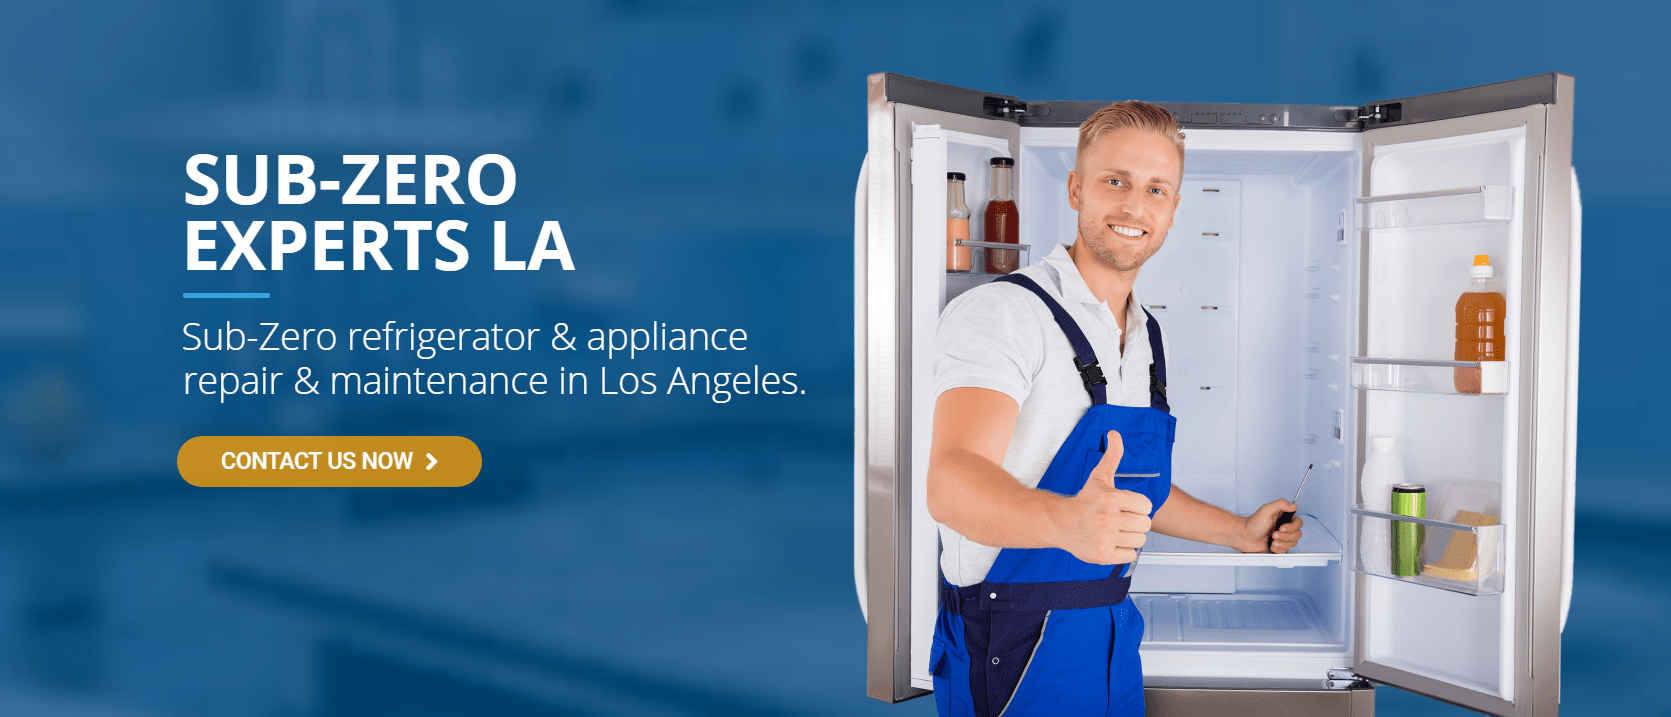 sub zero experts la refrigerator repair